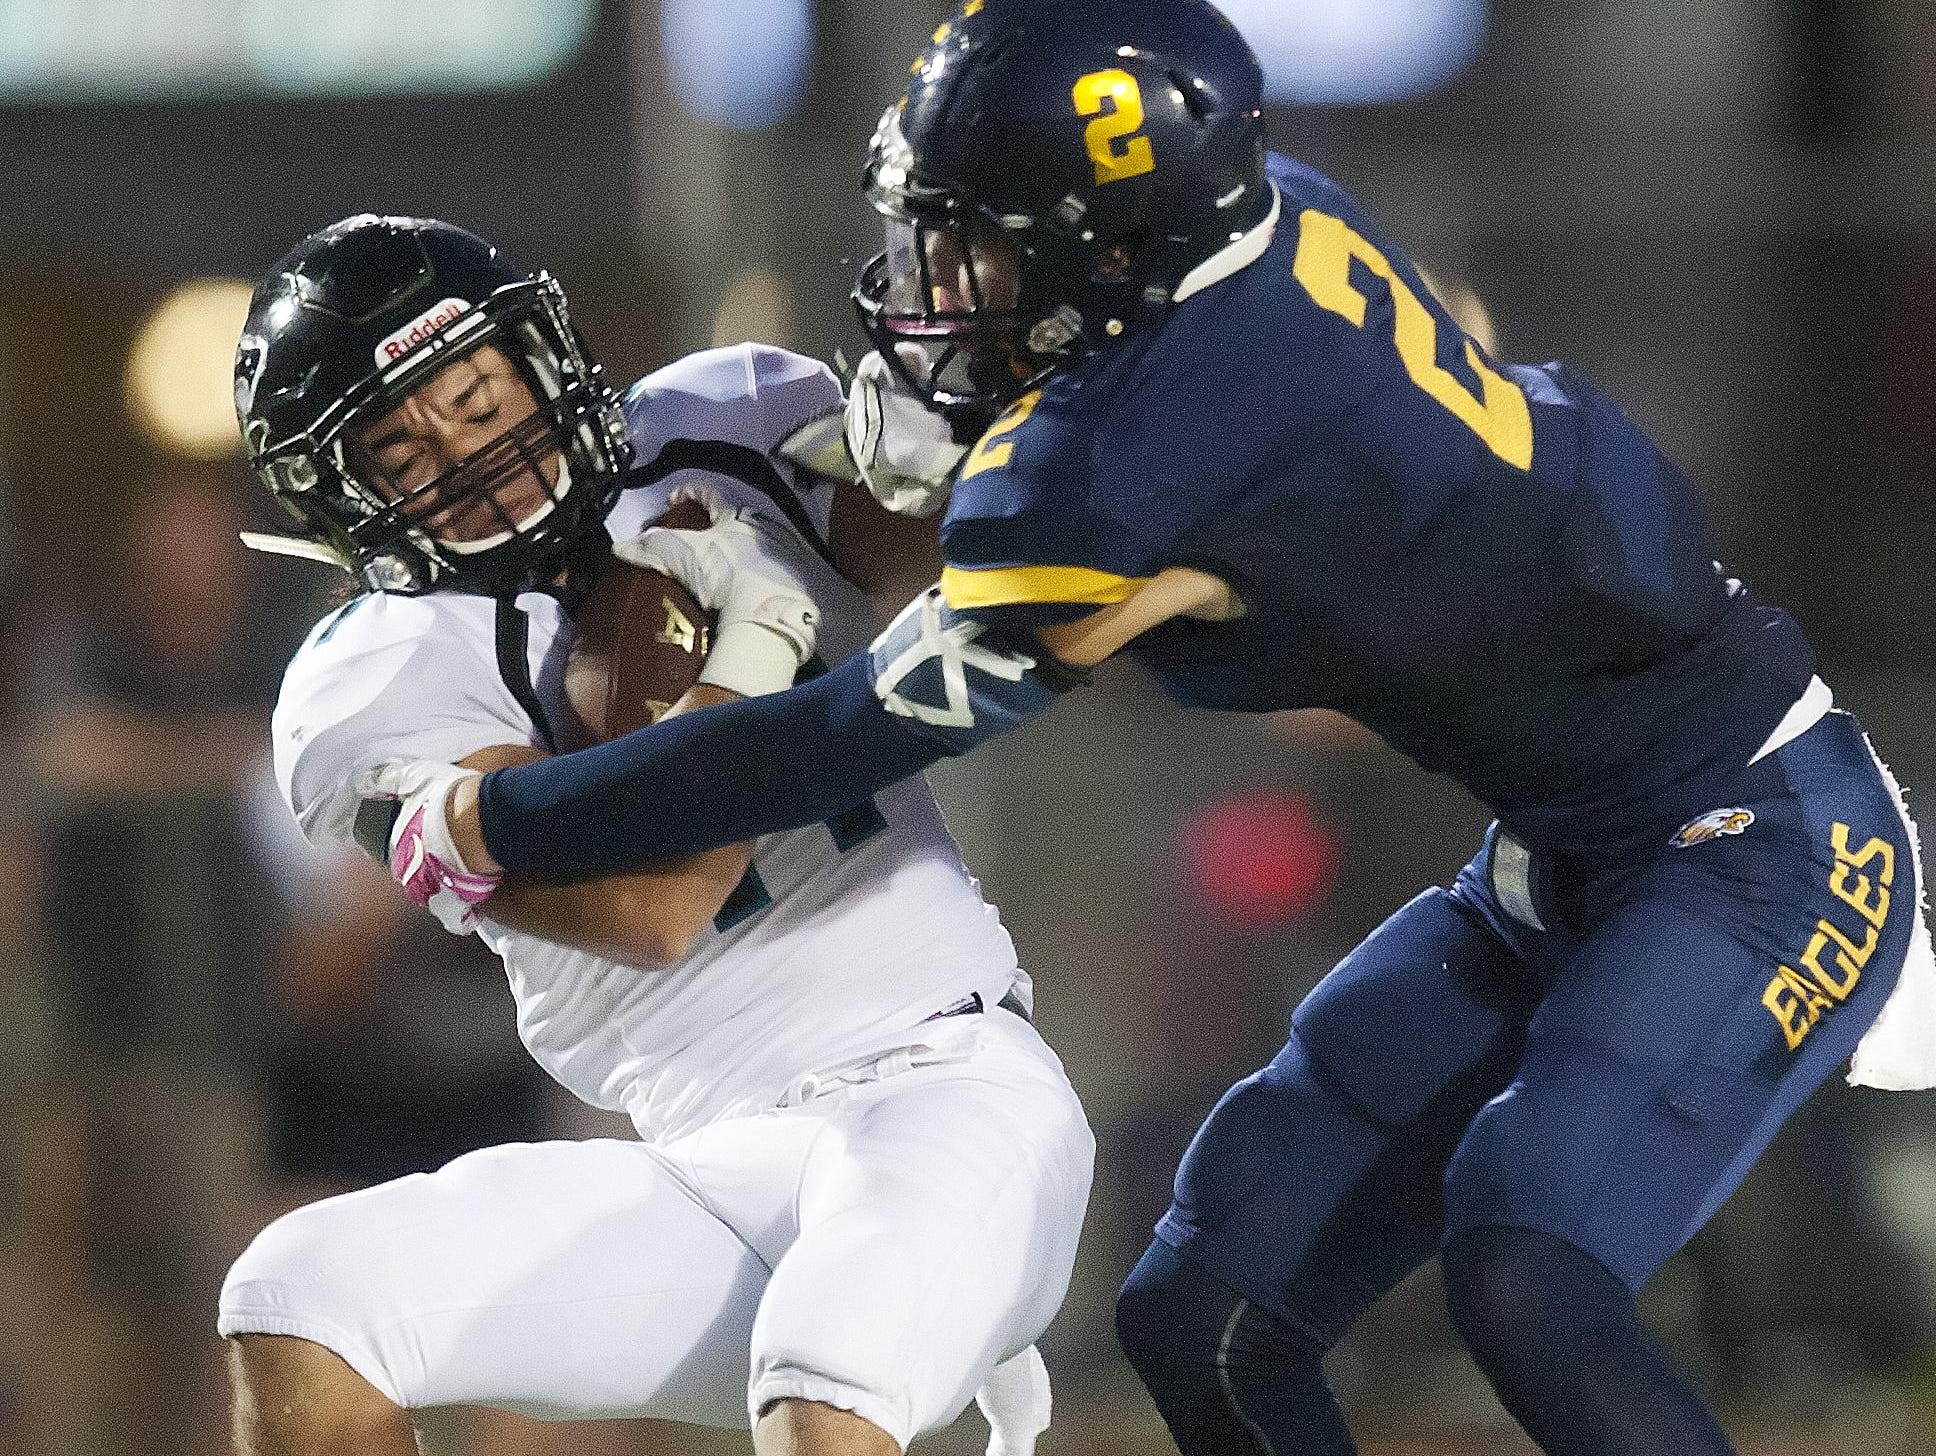 Naples High School's Chris Riley, right, tackles Gulf Coast's Daniel Rendon for a loss Friday at Naples High School.